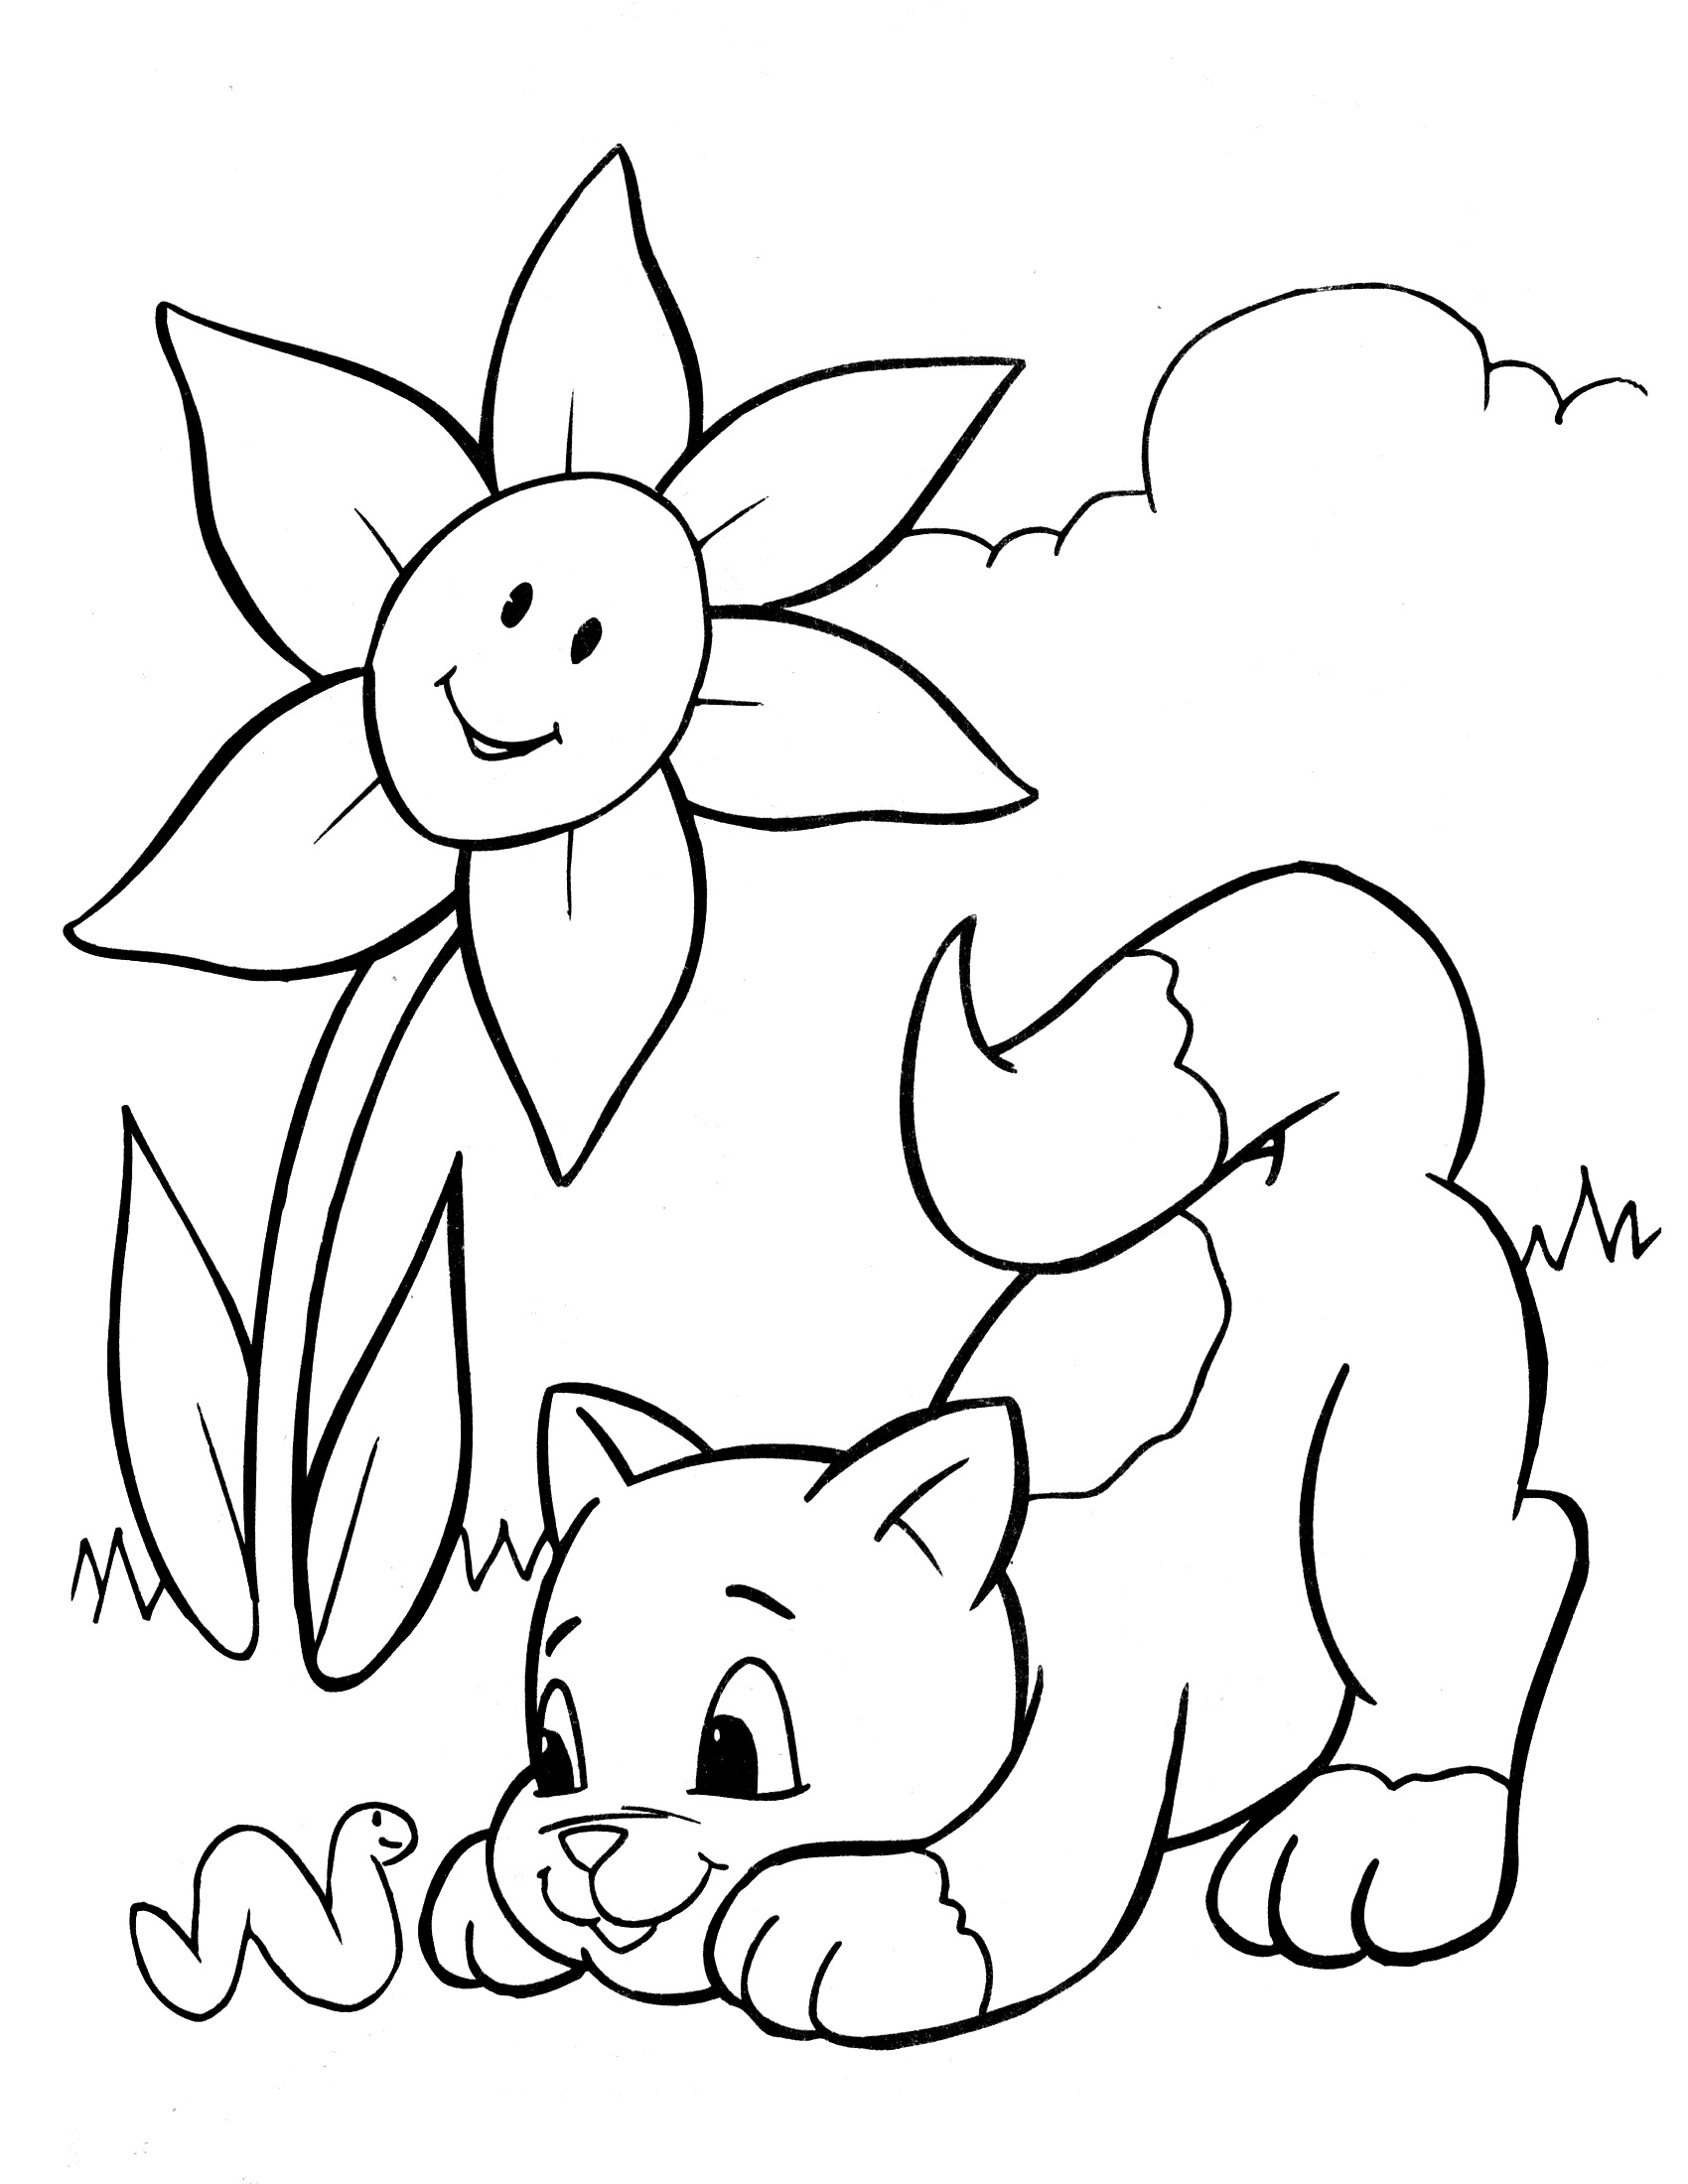 crayola free coloring pages 3